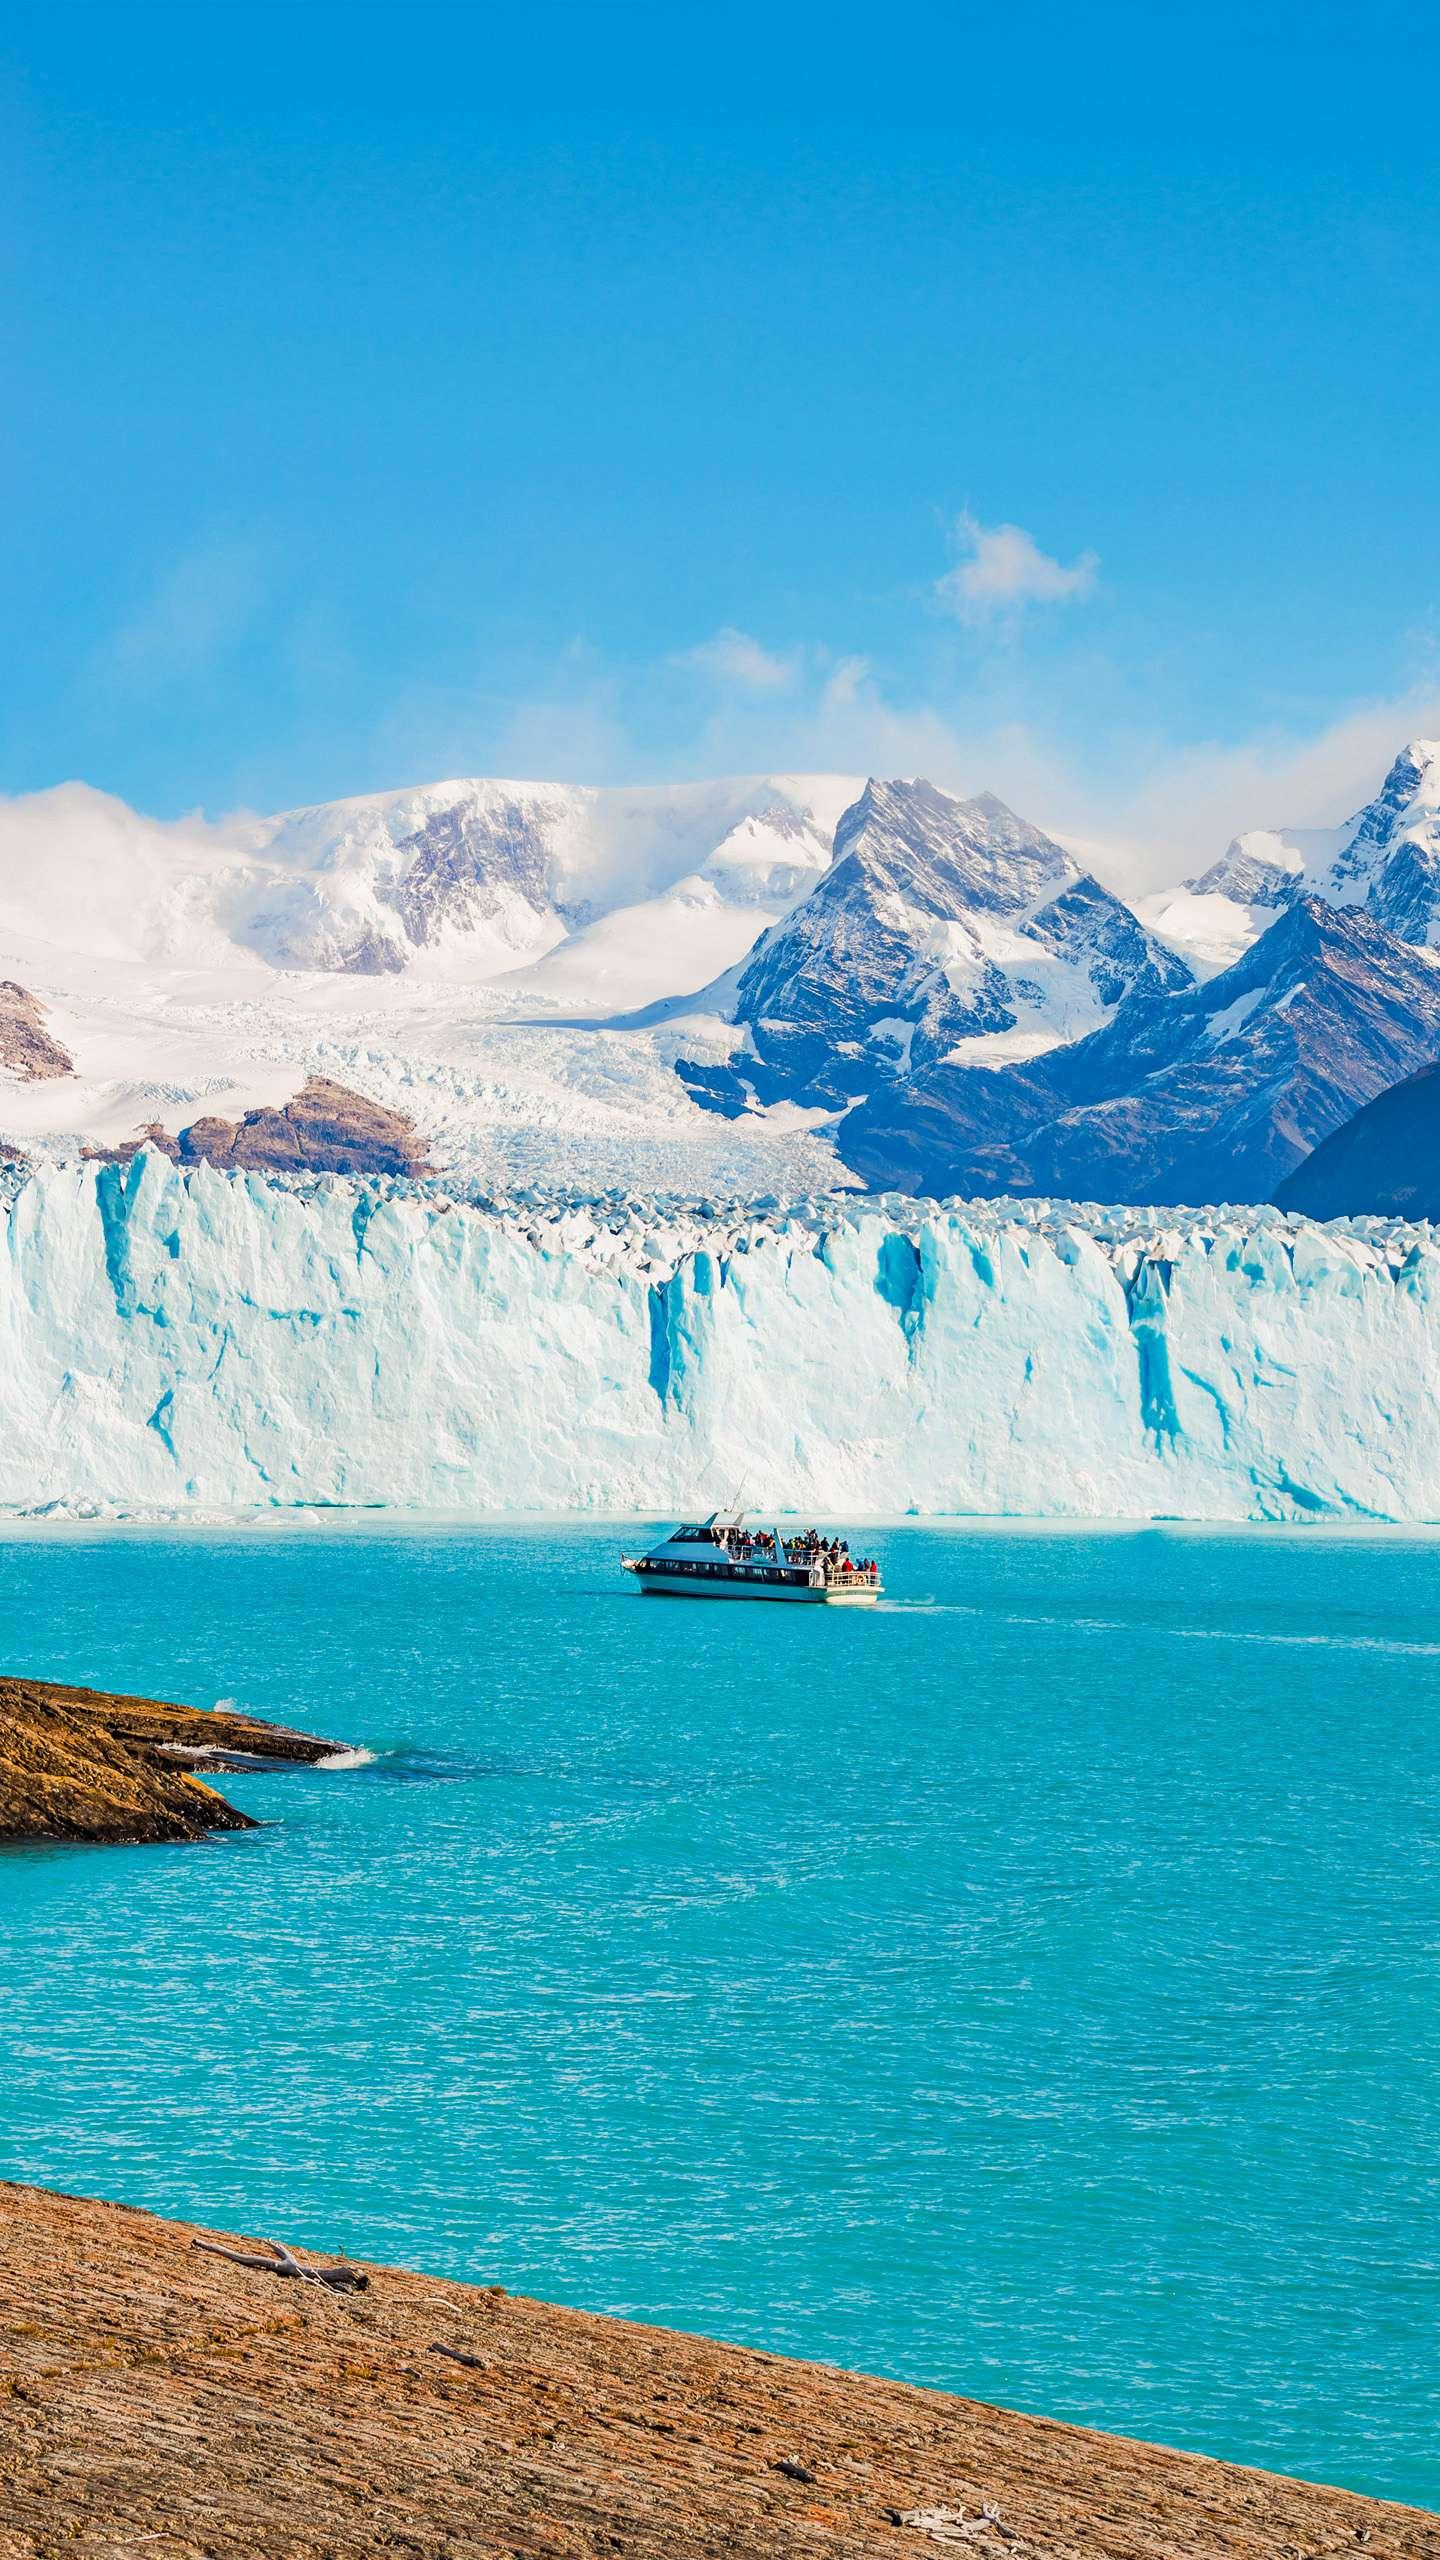 Moreno Glacier. One of the few live glaciers in the world, the spectacular sight is as if it were in the glacier age.